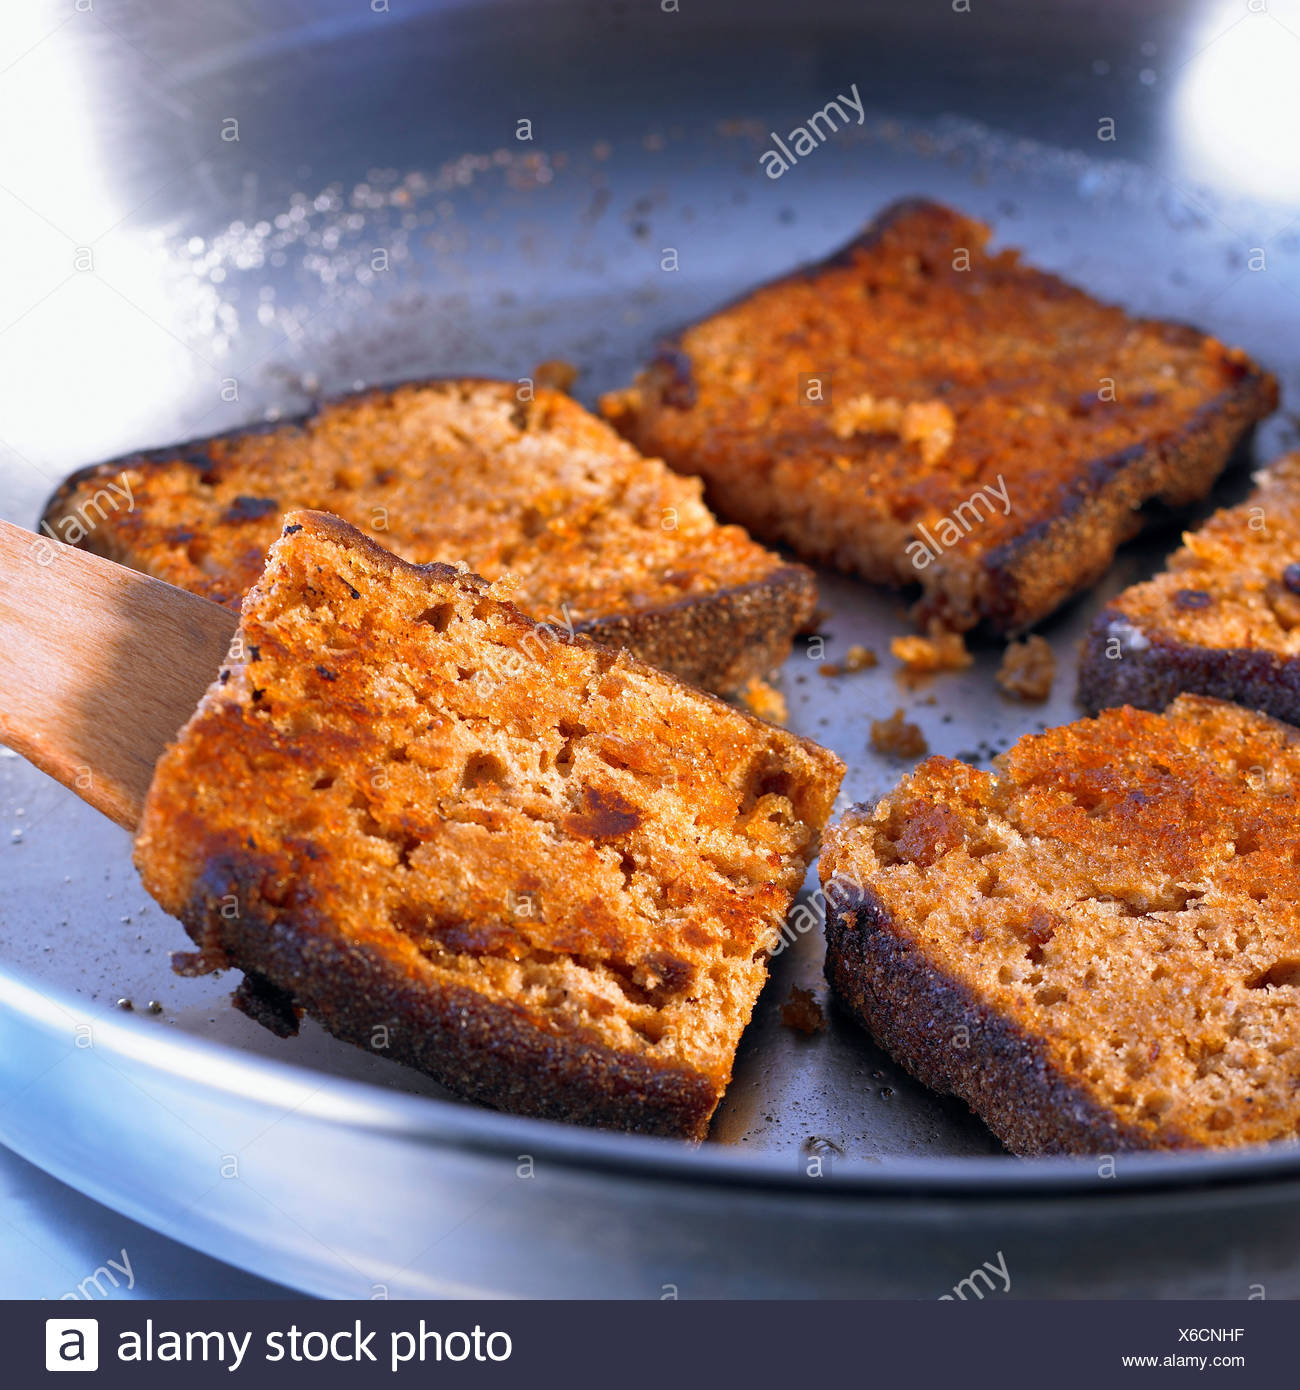 Pan-frying the slices of gingerbread - Stock Image